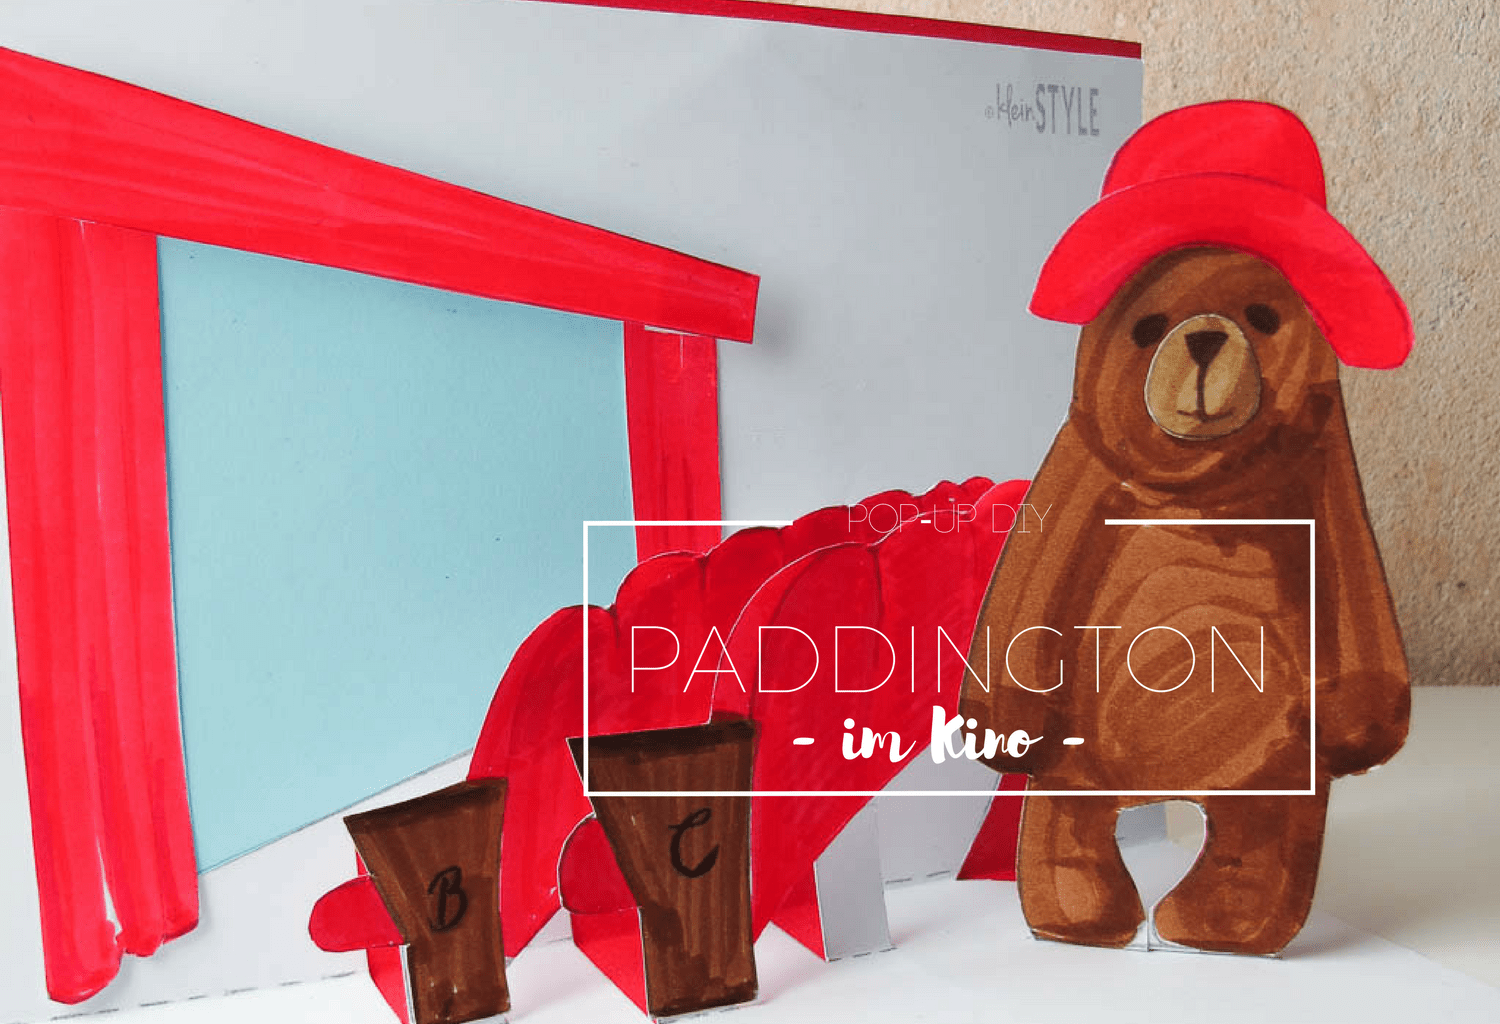 Paddington :  Erinnerungen, Emotionen, Entzücken {inkl. gratis Pop-Up DIY}